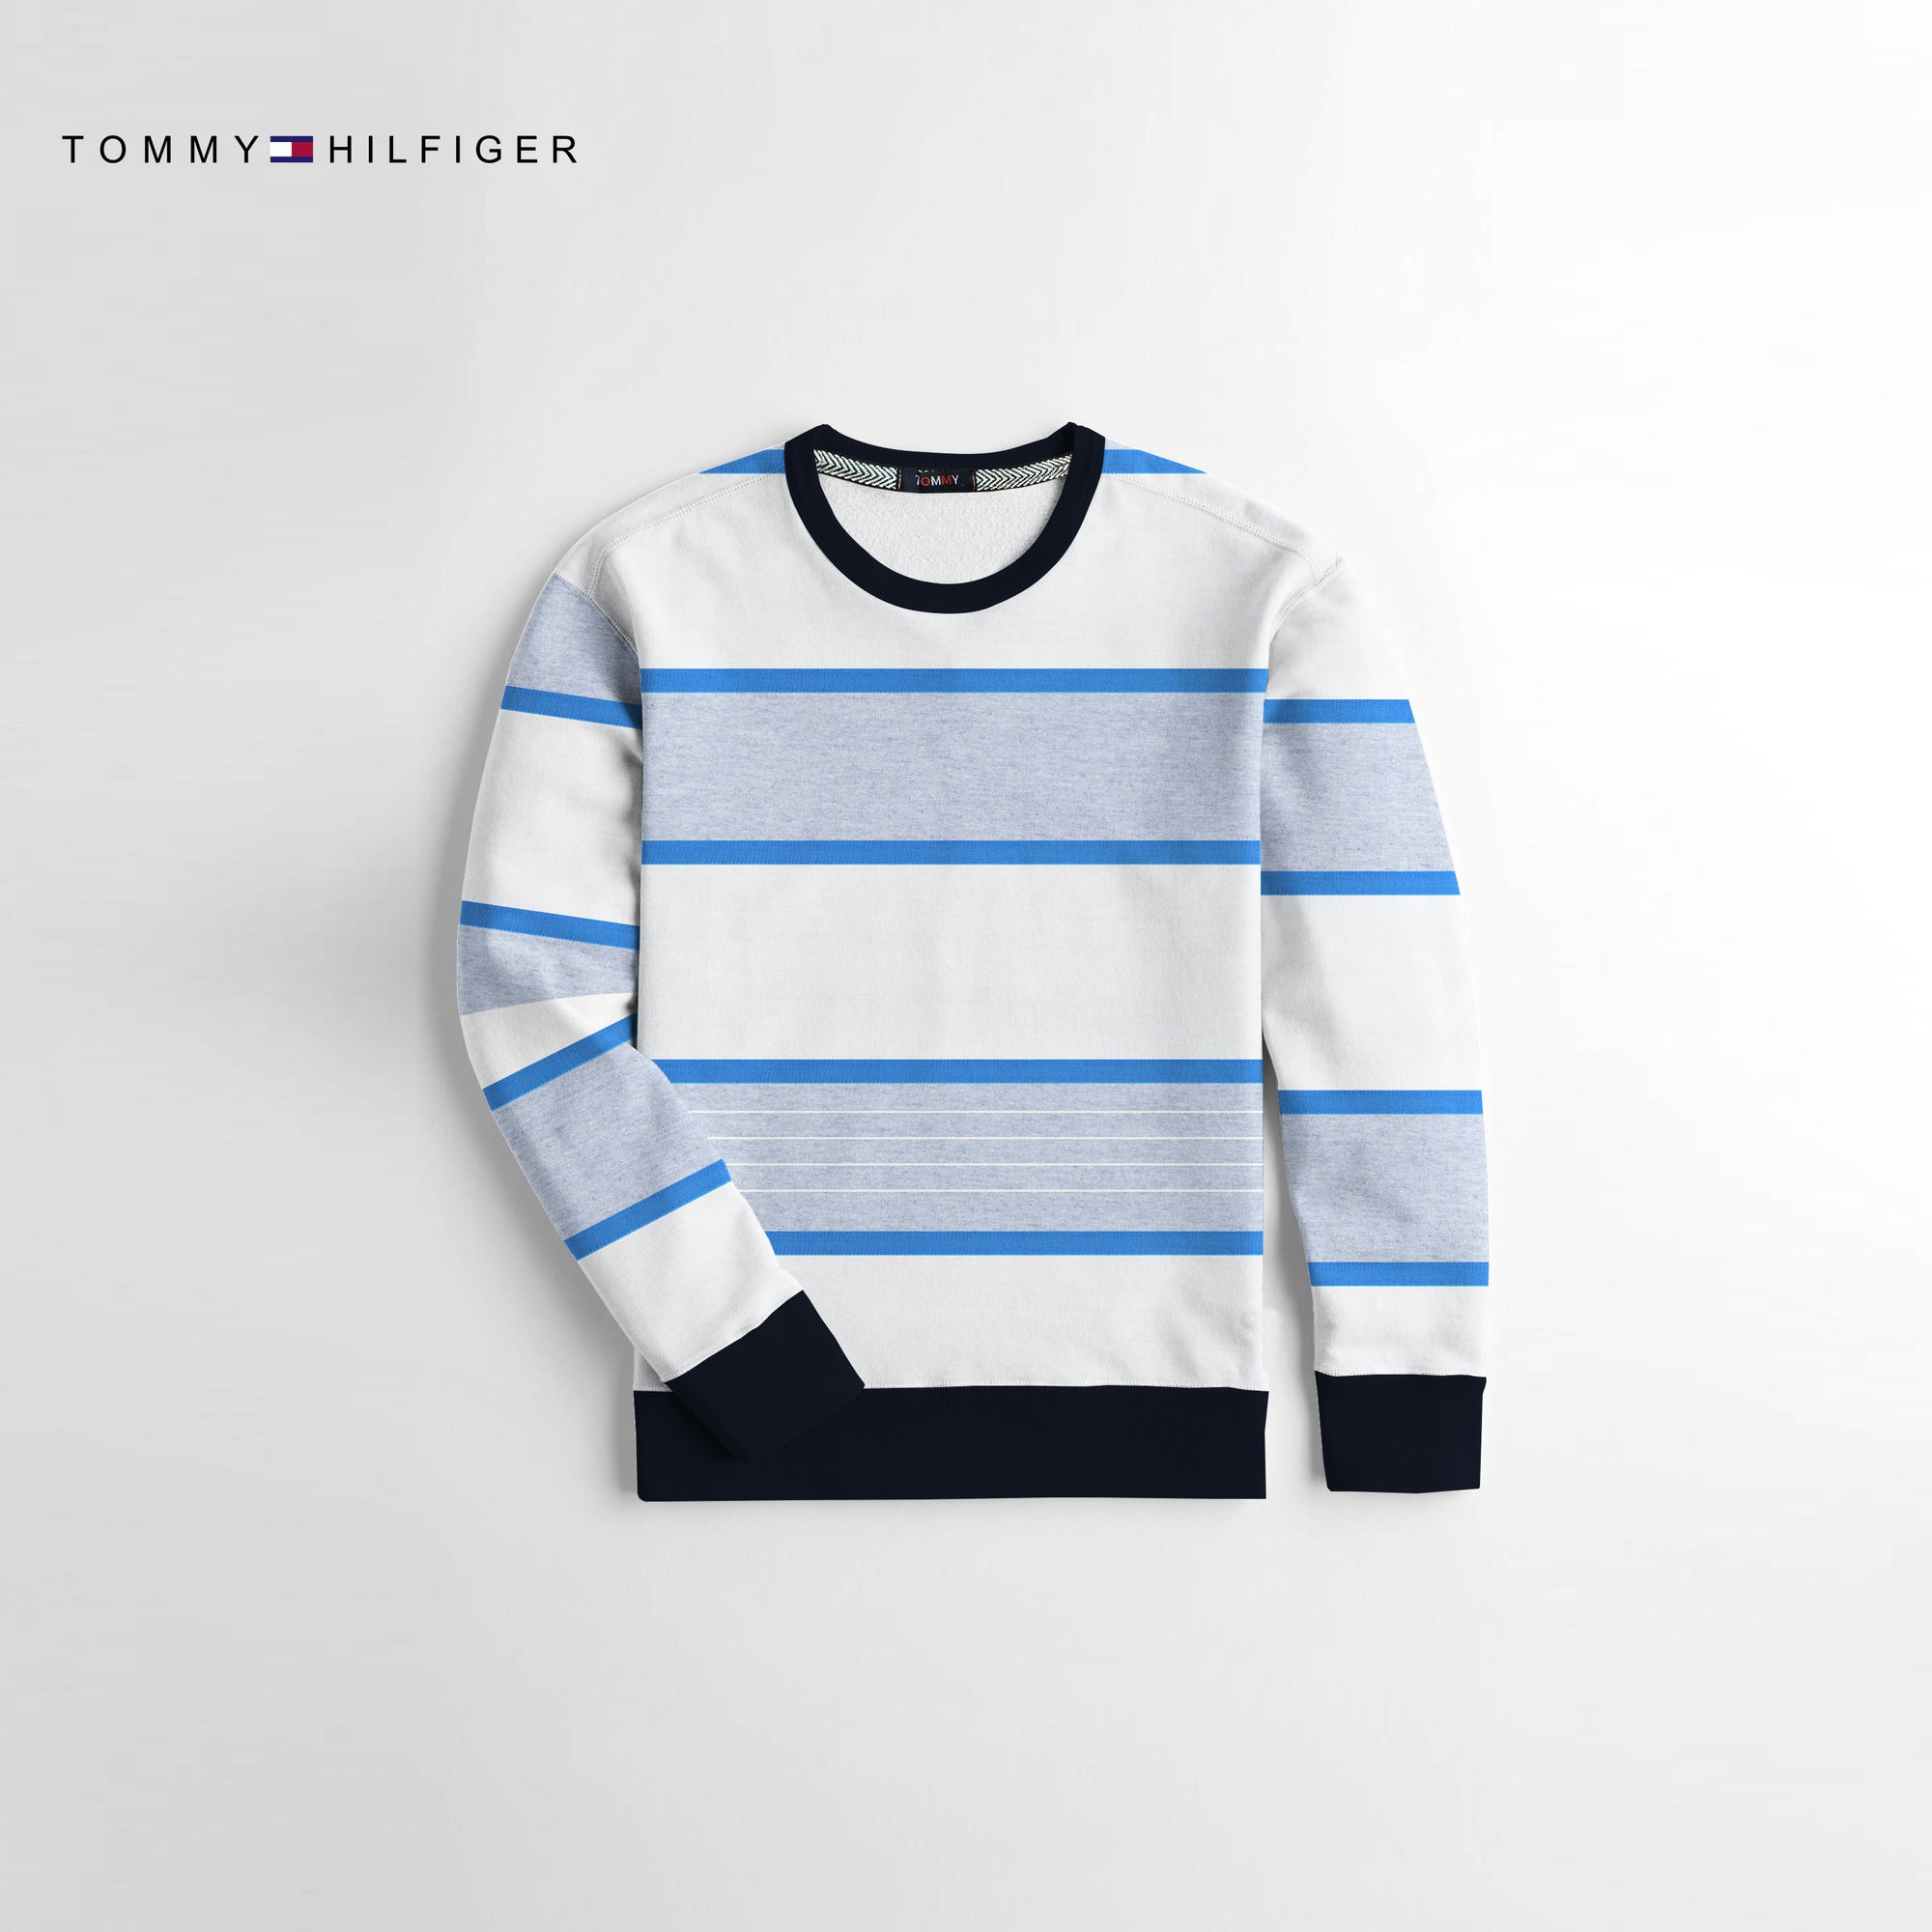 Tommy Hilfiger Crew Neck Terry Fleece Sweatshirt For Kids-Blue White & Grey-NA10677